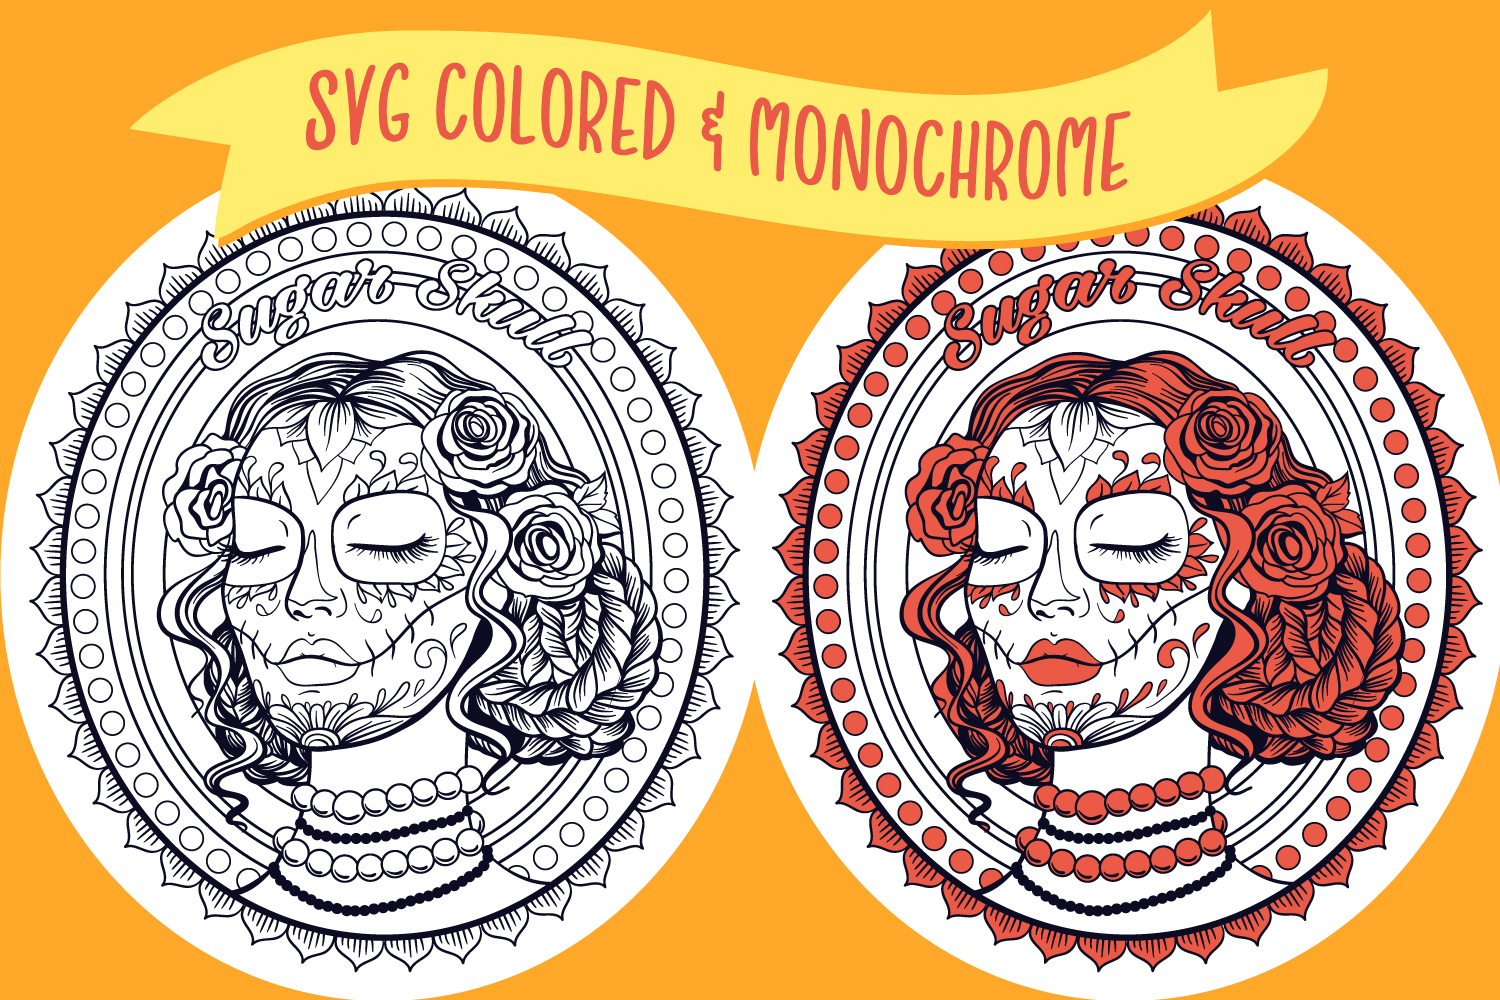 Sugar Skull Lady Coloring Page SVG cut file example image 2